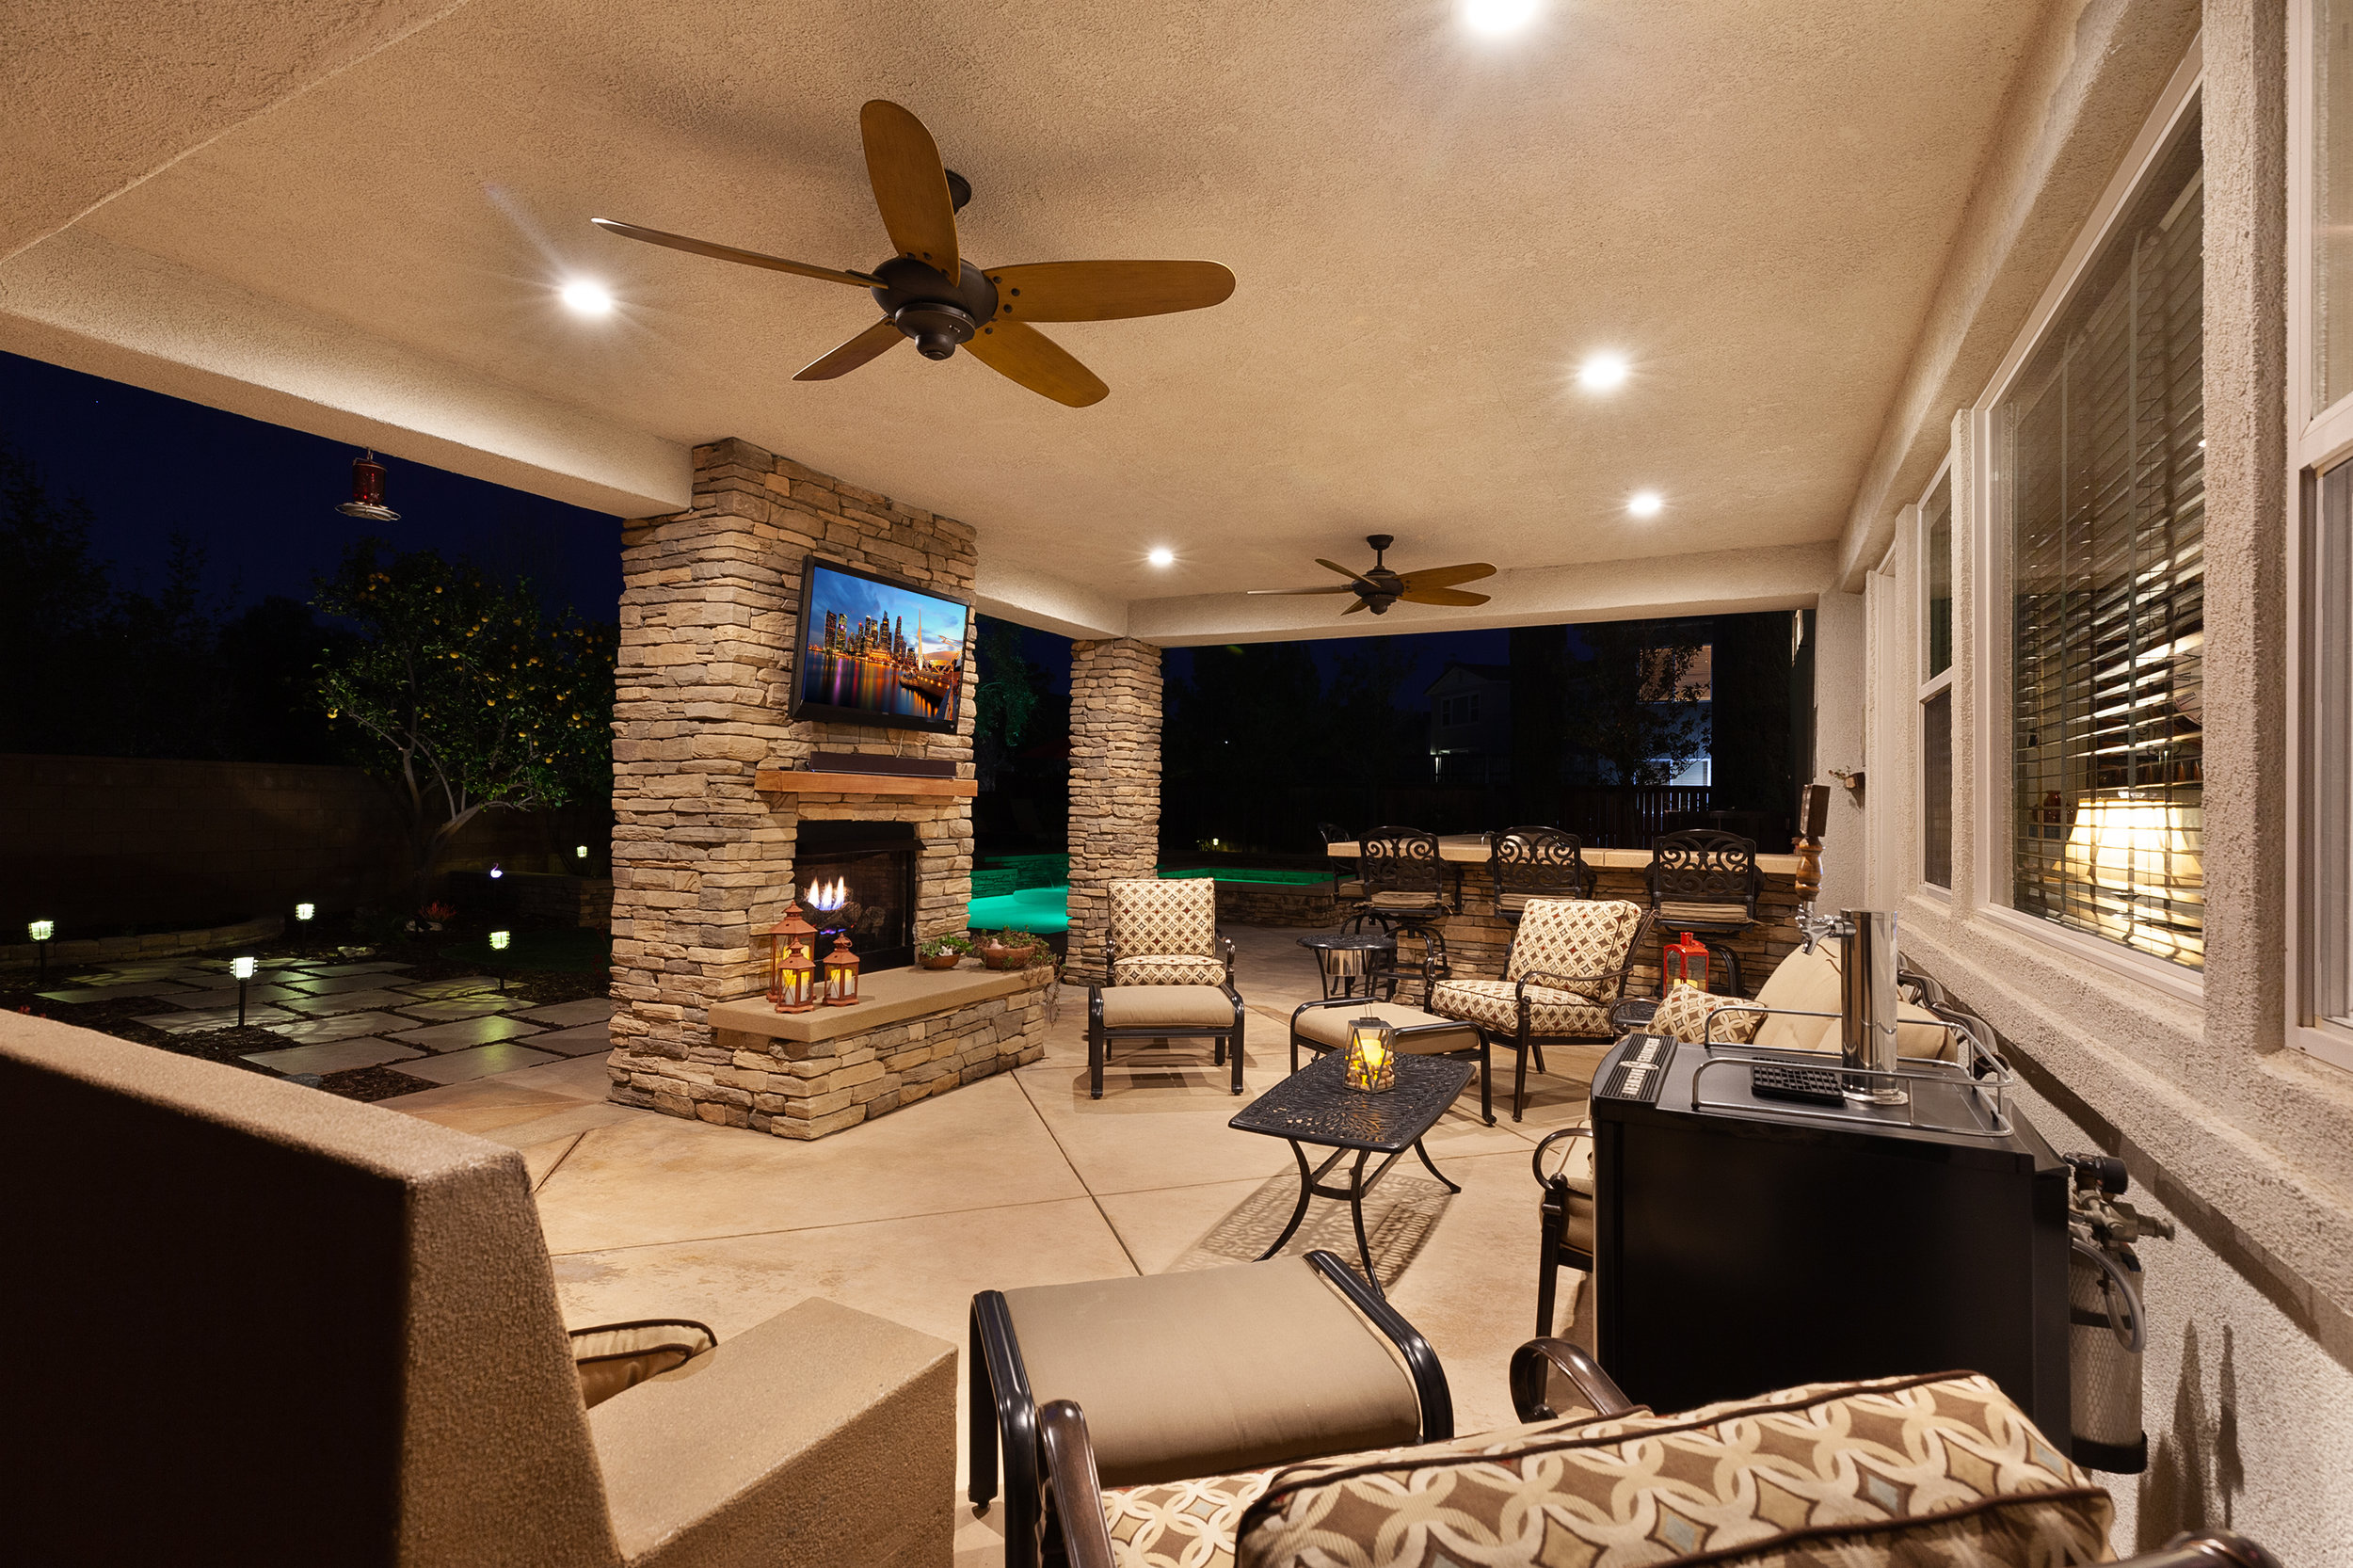 056_Twilight Covered Patio View.jpg